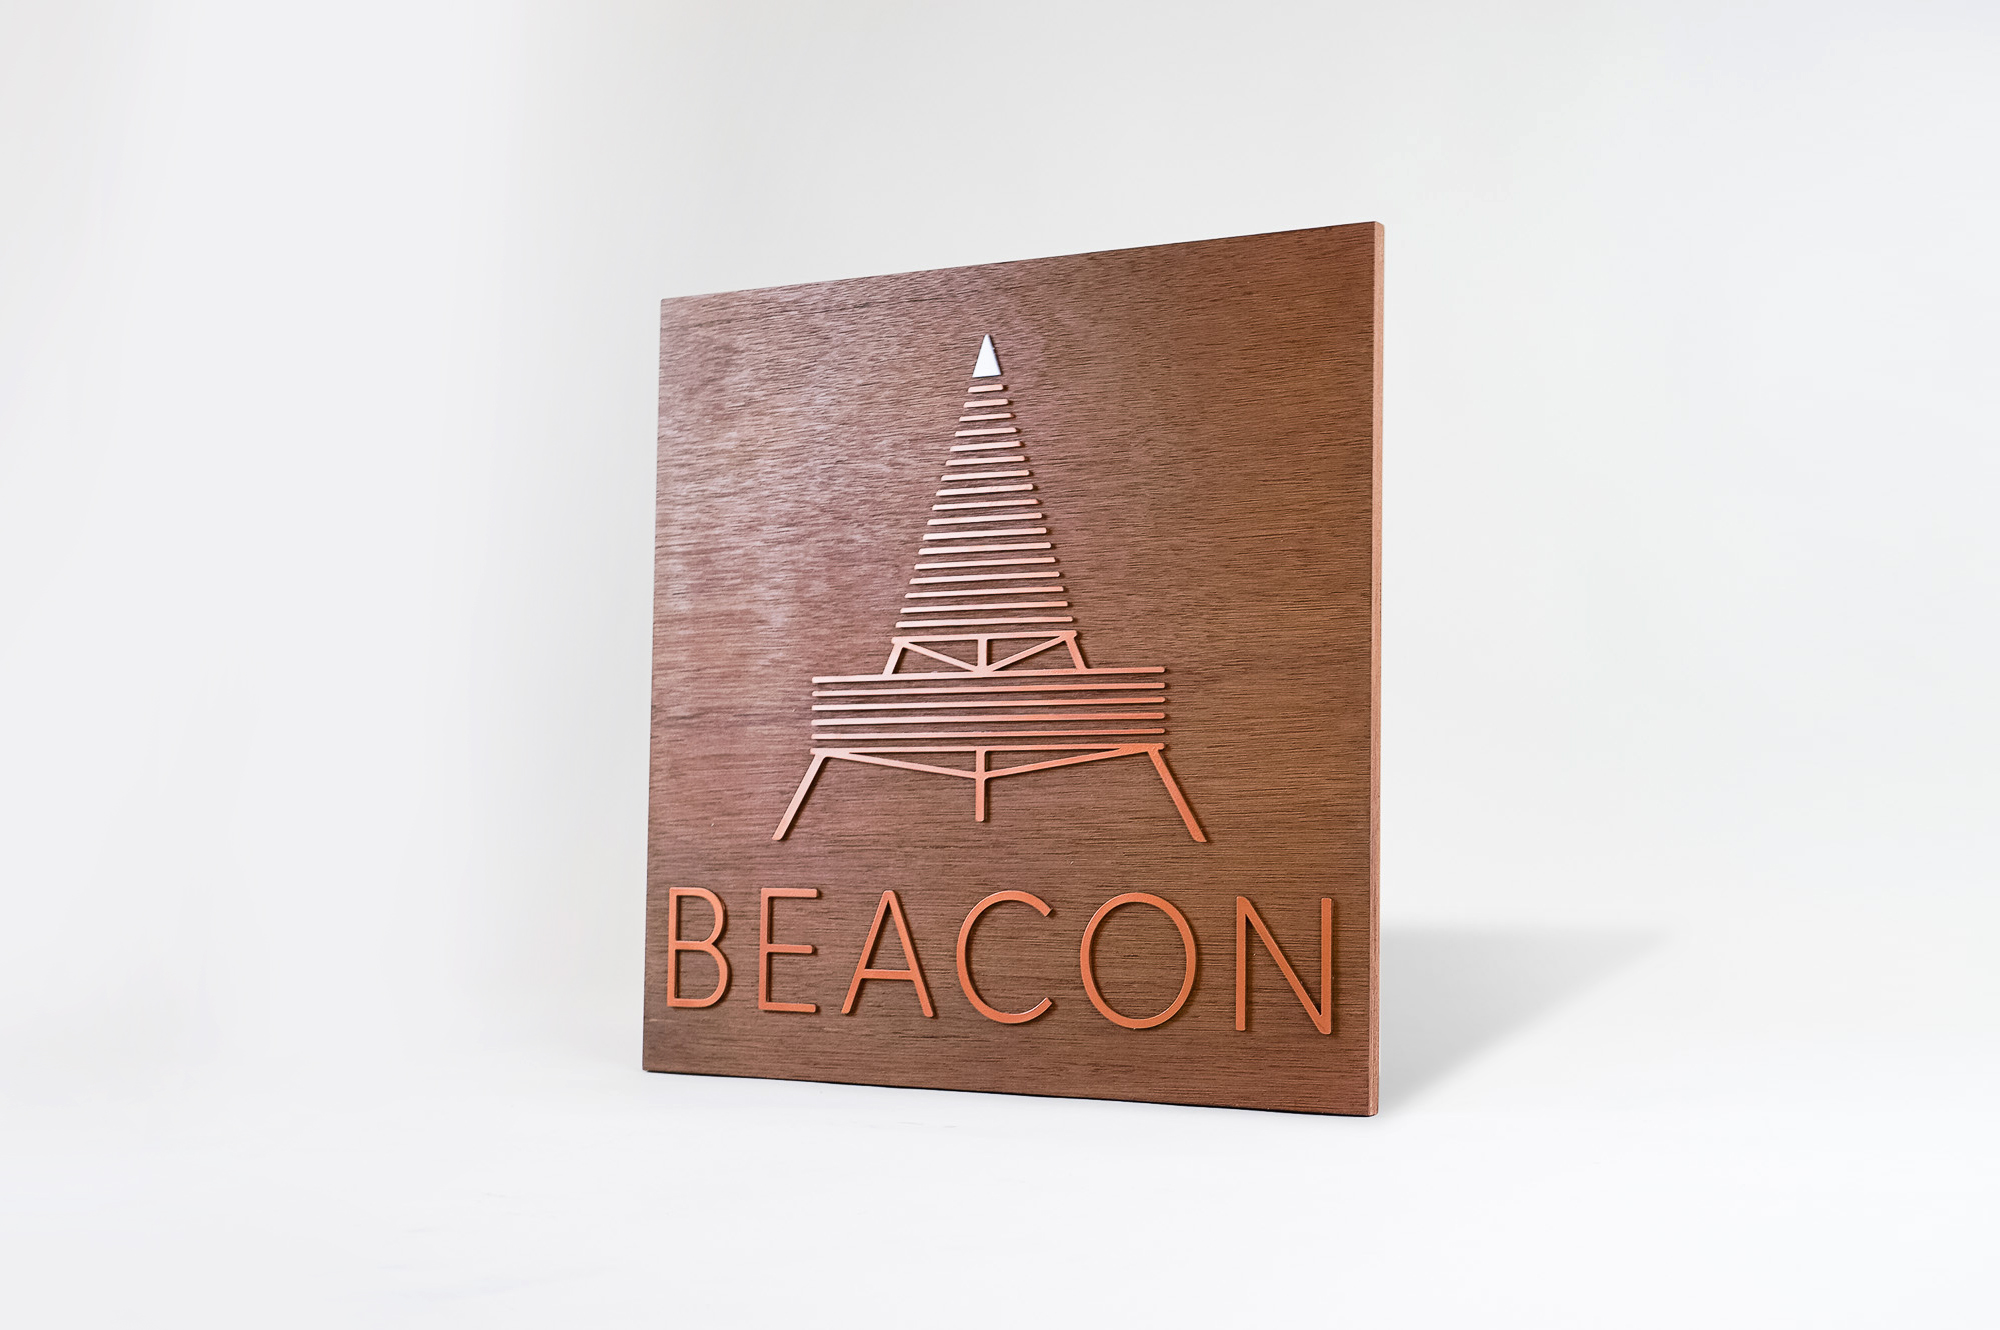 Metallic copper painted acrylic and dark wood outdoor sign for Beacon